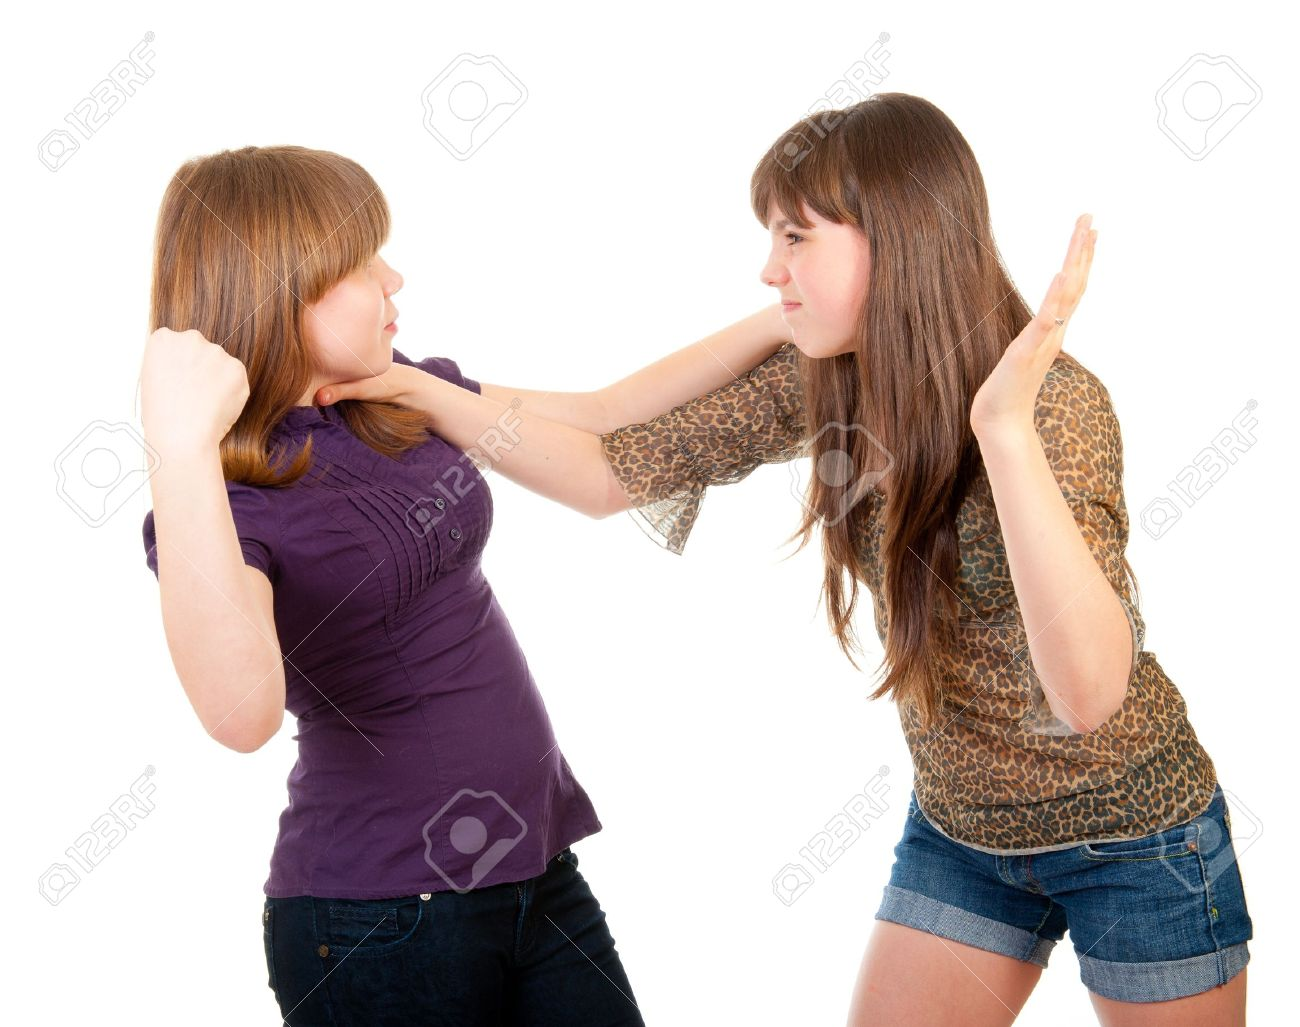 Fighting teen girls isolated over white background - 10802164